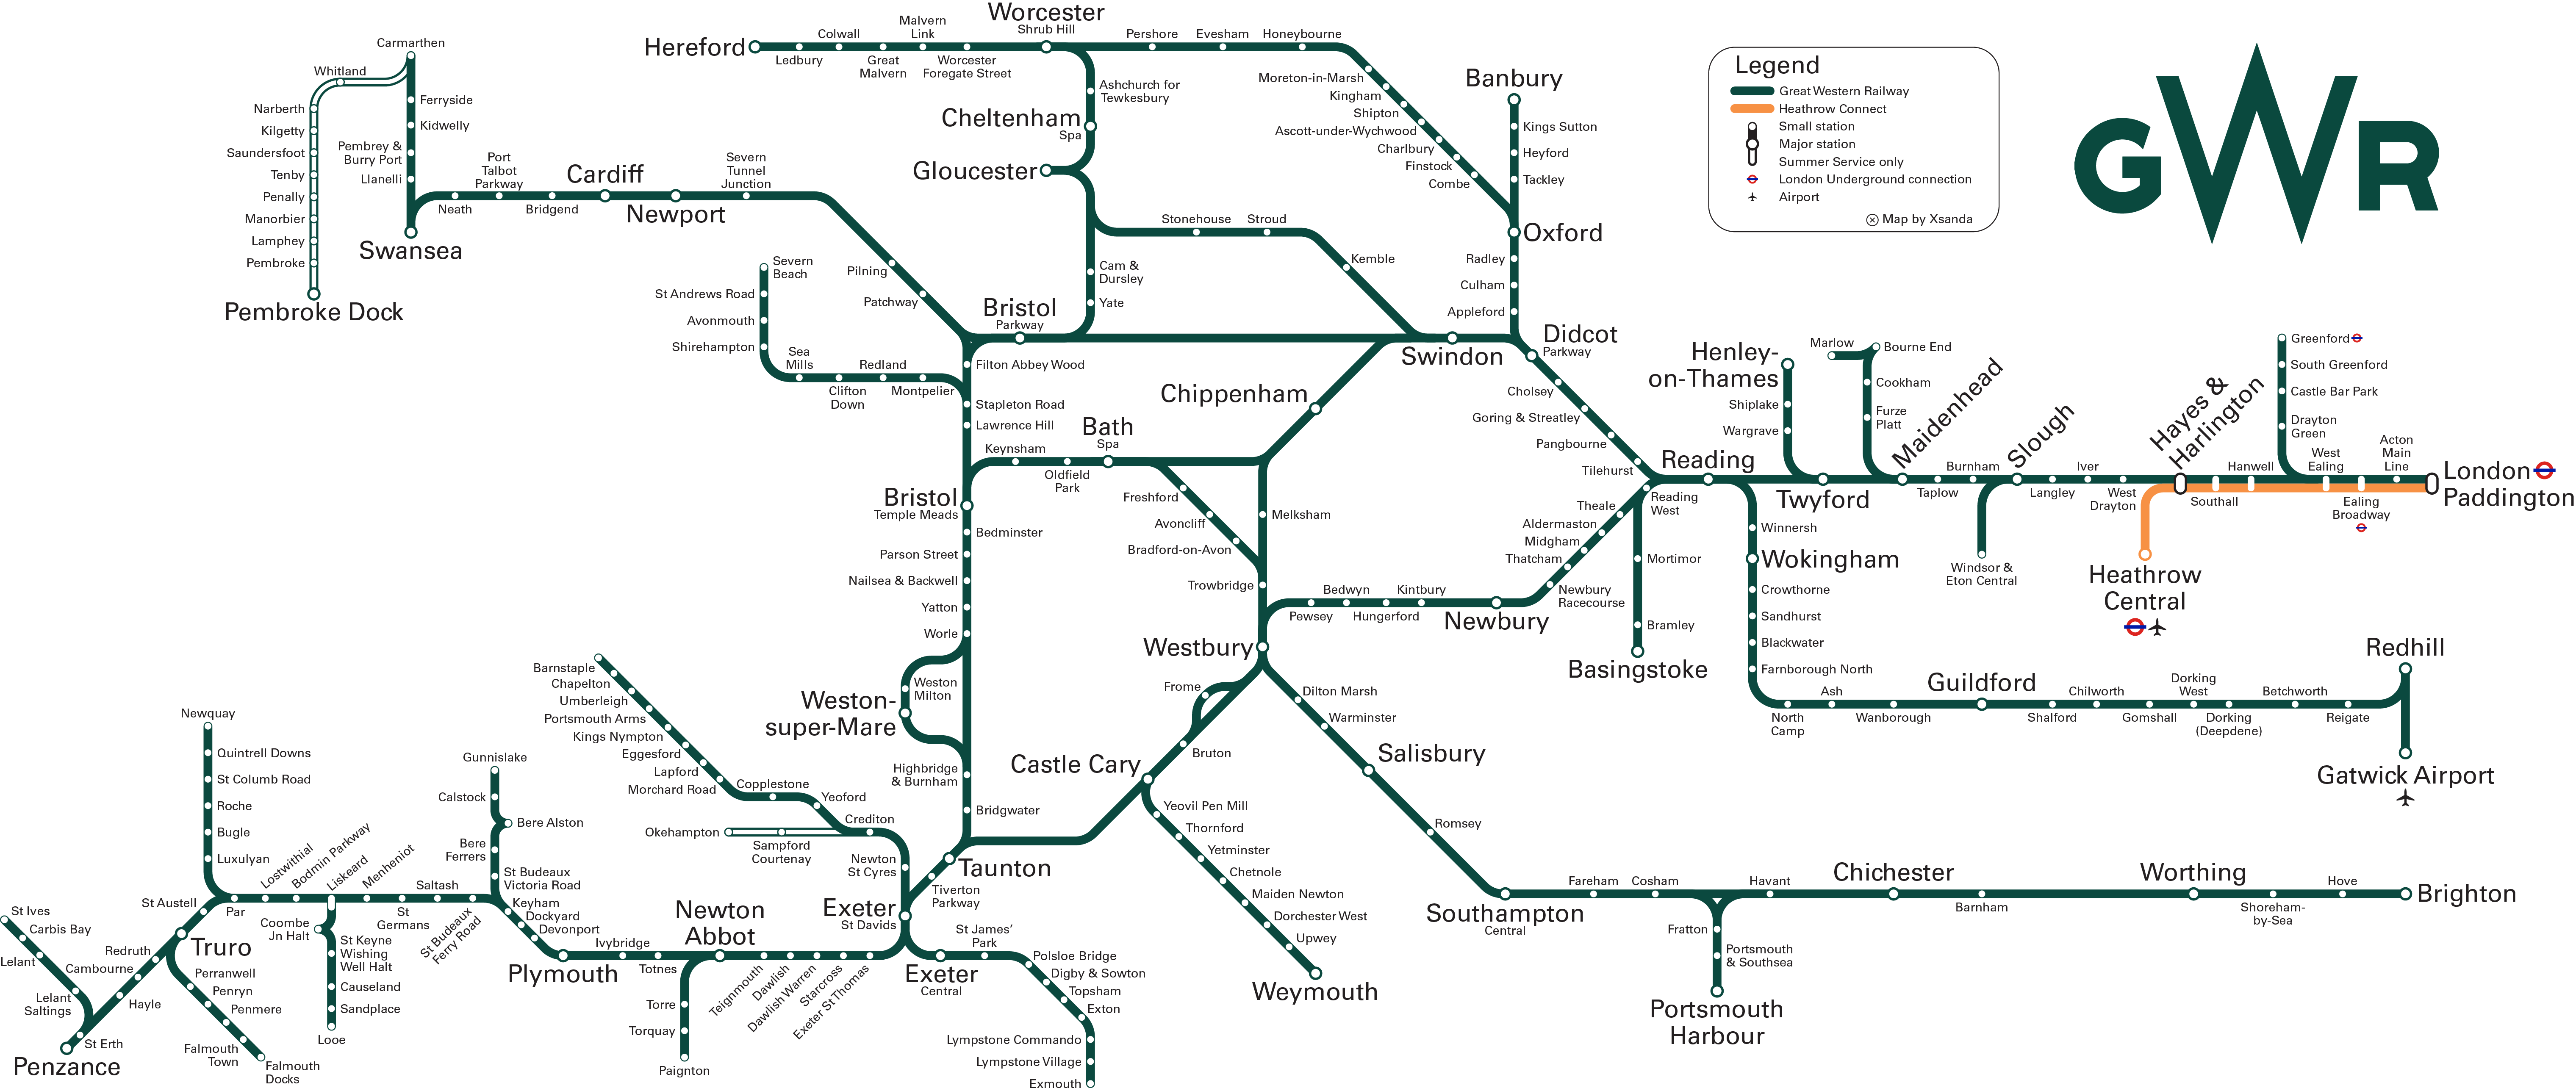 GWR route map Wales and England by Xsanda map uk wales england